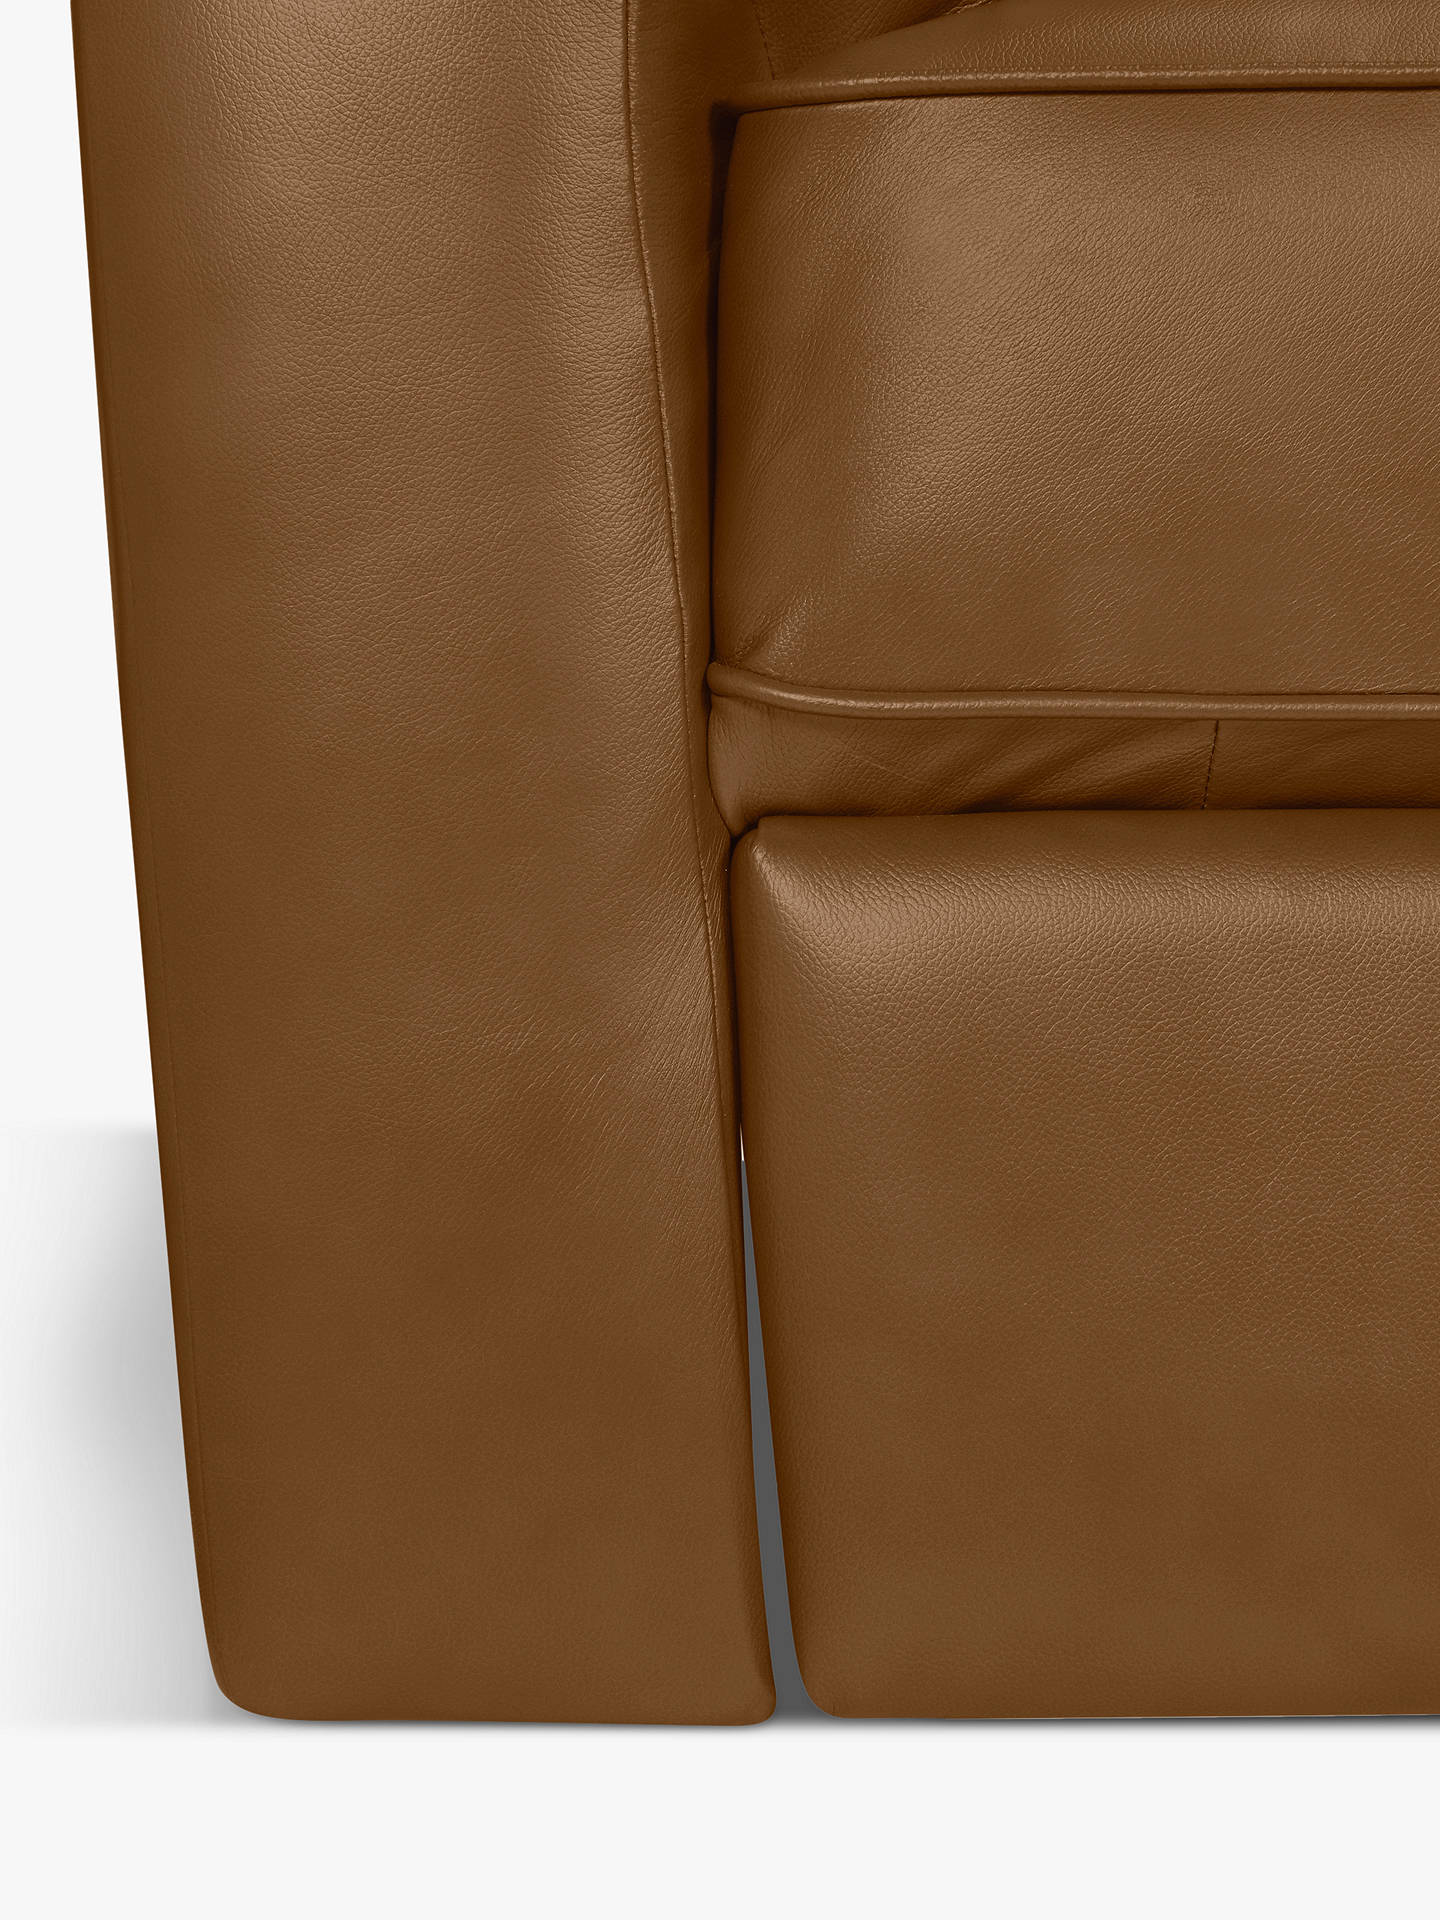 BuyJohn Lewis & Partners Carlisle Leather Power Recliner Small 2 Seater Sofa, Demetra Light Tan Online at johnlewis.com